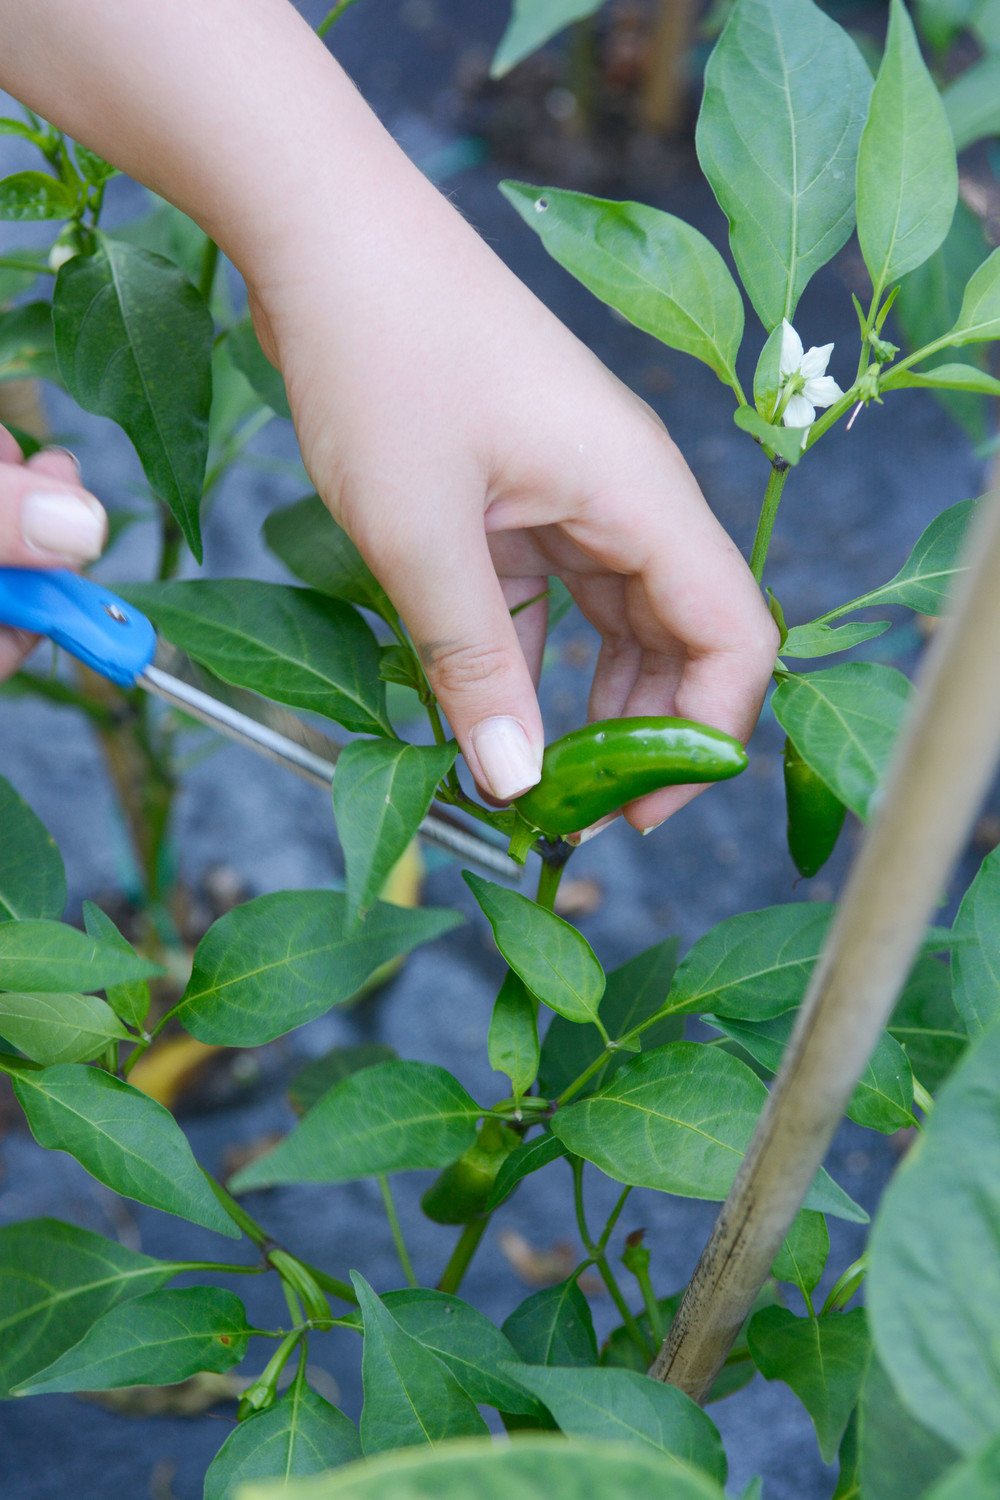 A student clips a jalapeno pepper off a plant.